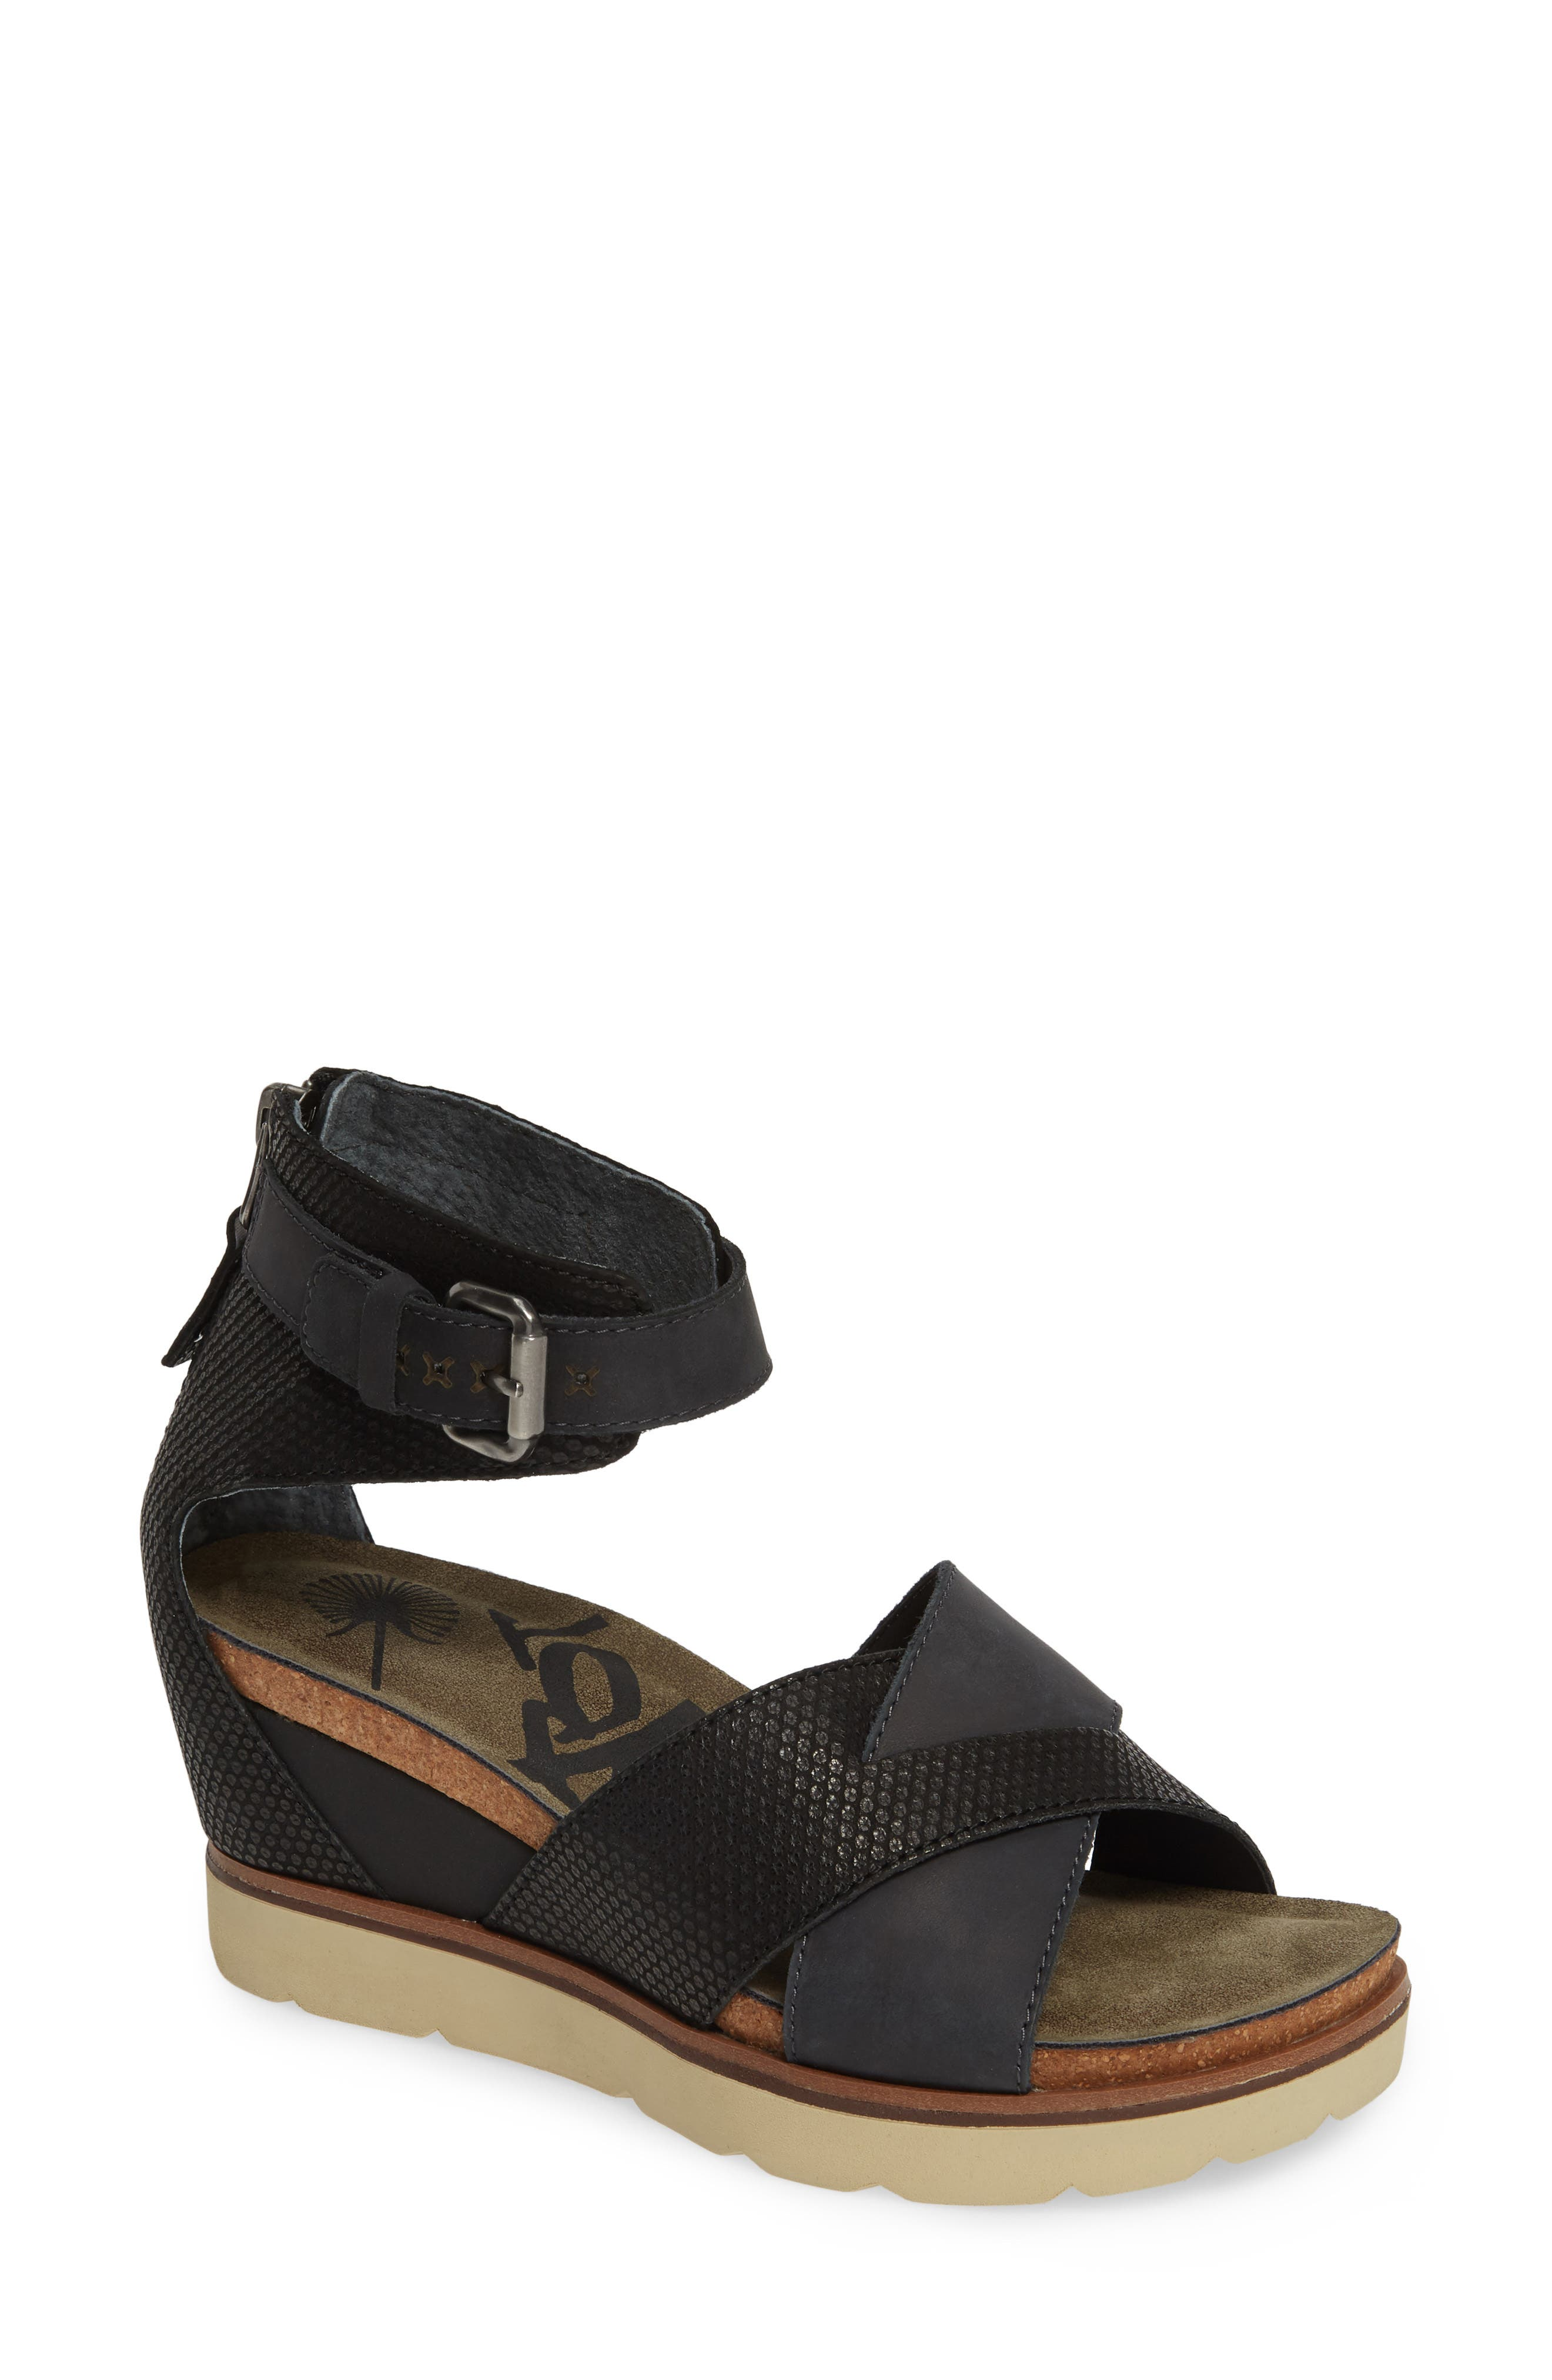 OTBT Teamwork Ankle Strap Sandal, Main, color, BLACK LEATHER